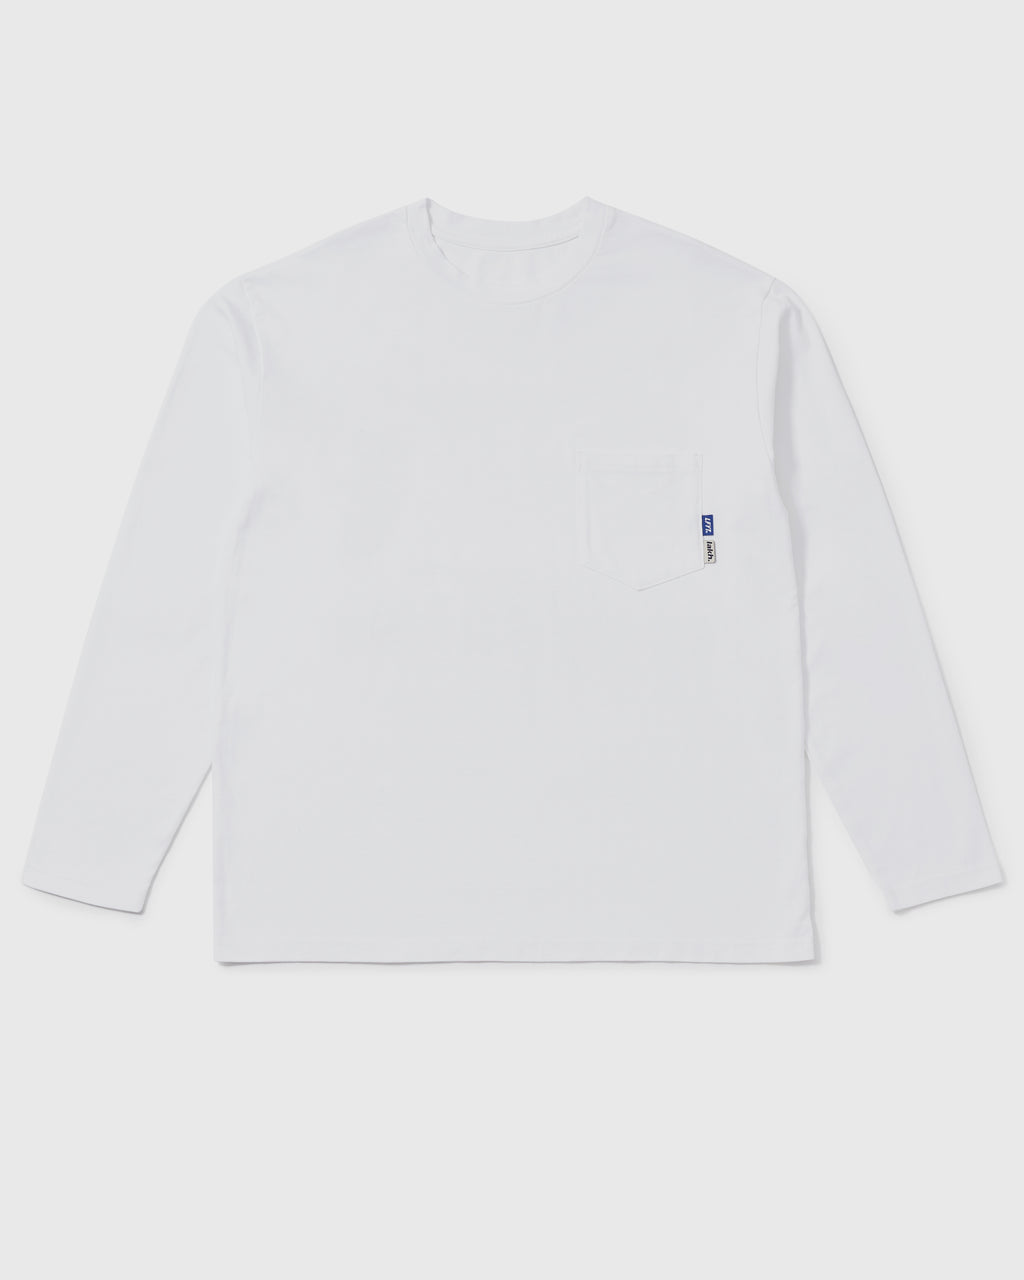 LAKH X LFYT Pocket Long Tee - White